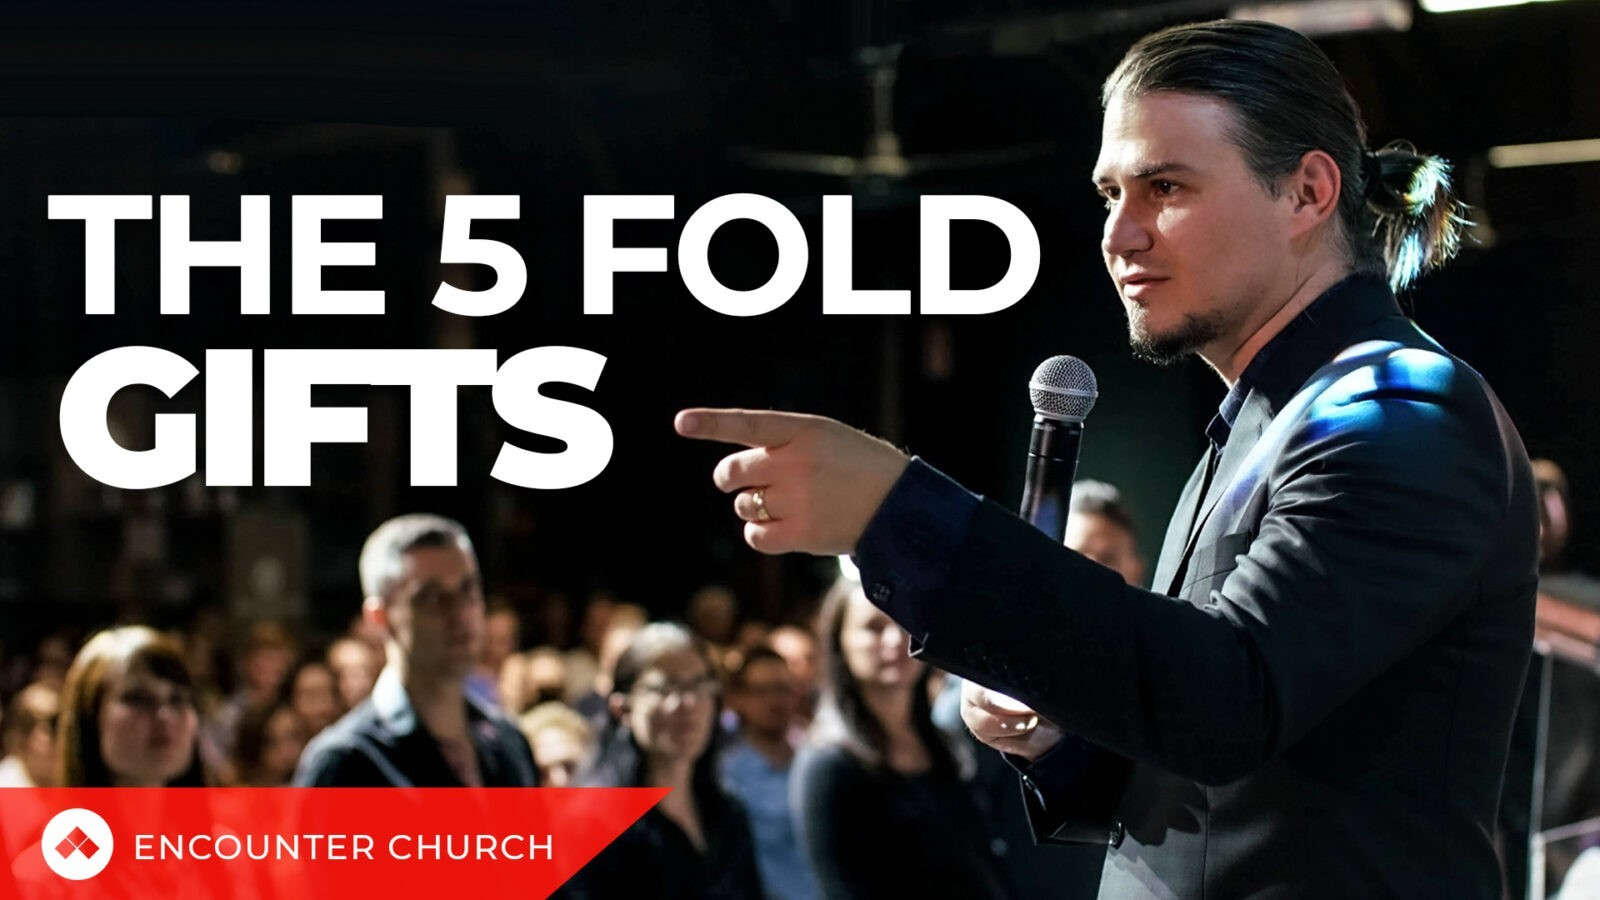 ENCOUNTER CONFERENCE – The 5 Fold Gifts